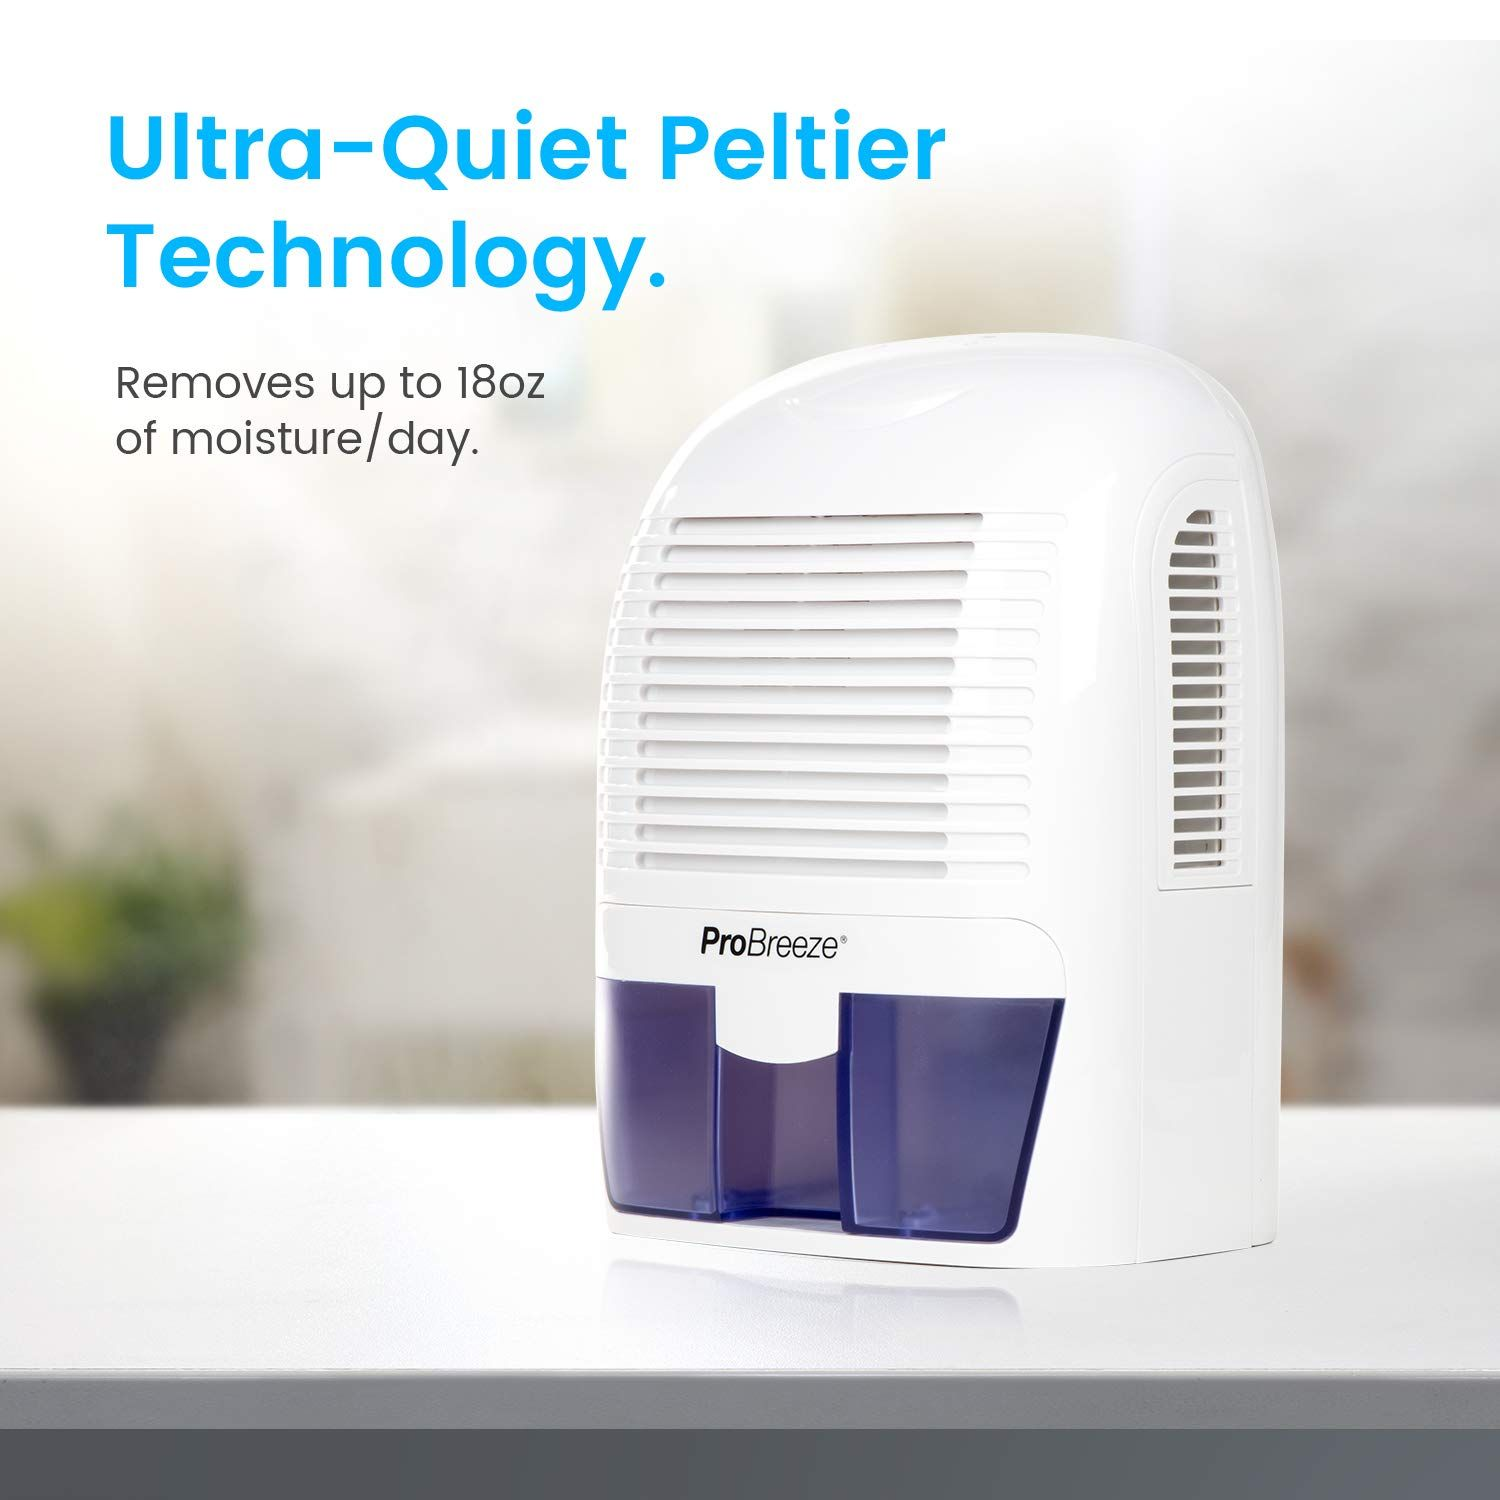 Pro Breeze Electric Mini Dehumidifier 2200 Cubic Feet 250 Sq Ft Compact And Portable For High Humidity In Home Dehumidifiers Mini Dehumidifier Cubic Foot